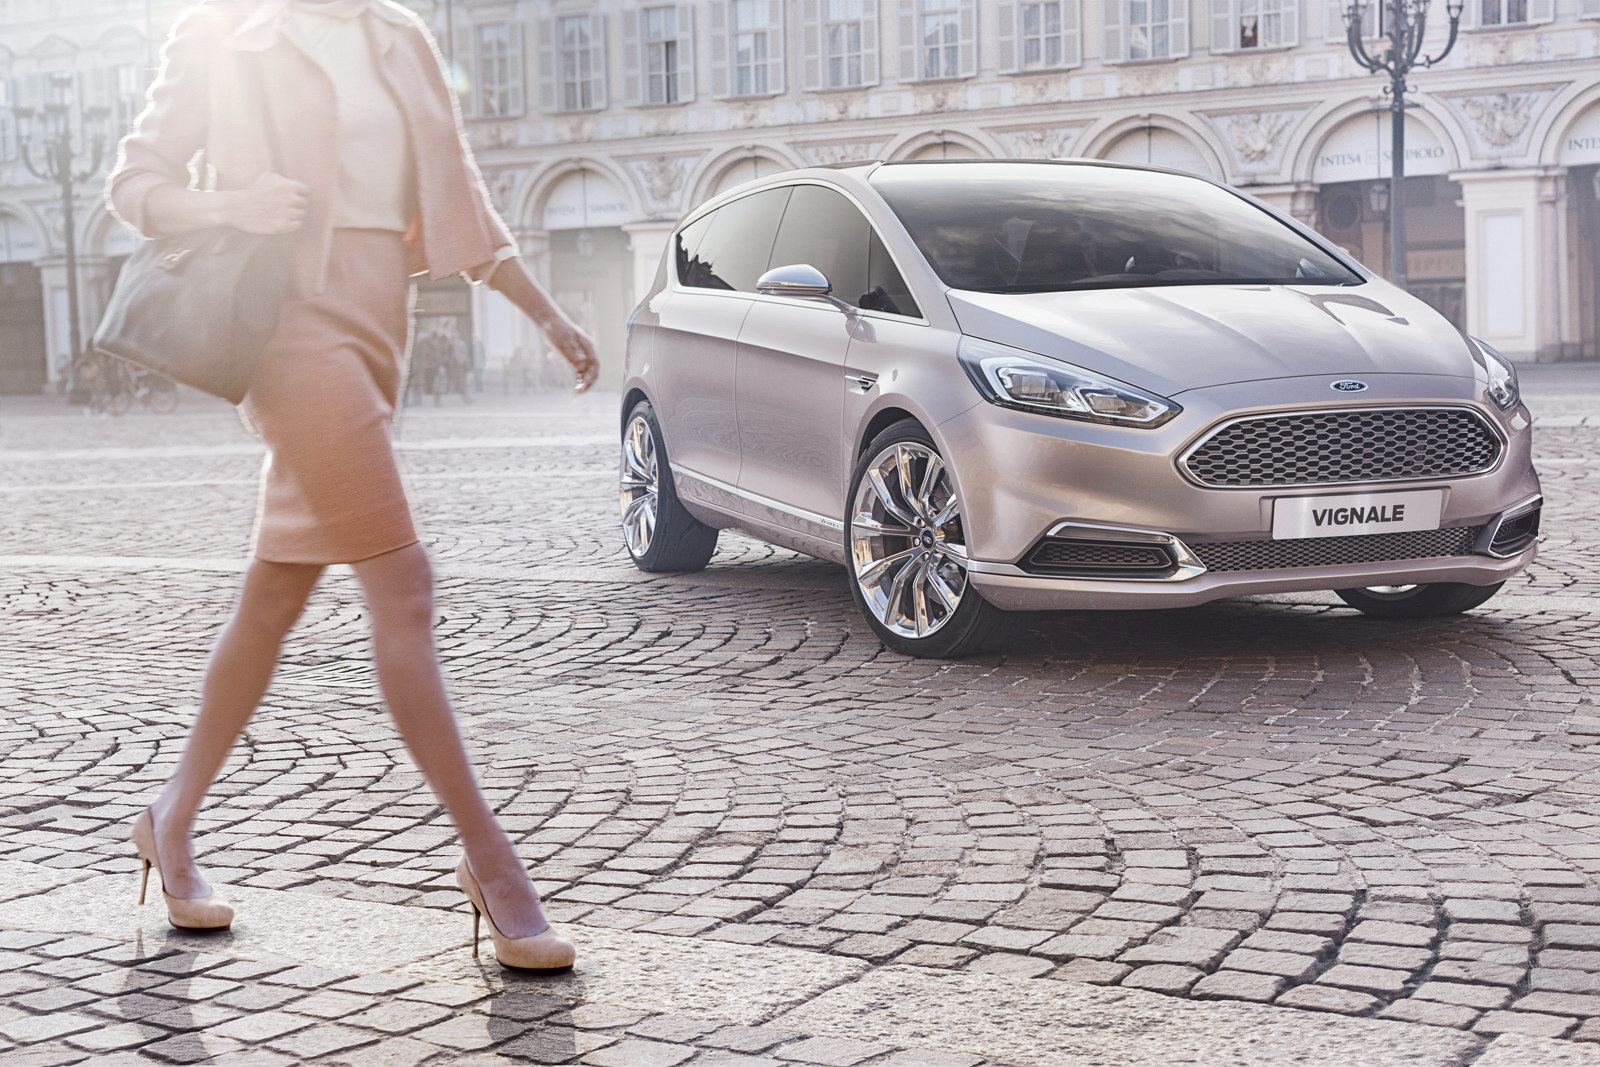 https://s1.cdn.autoevolution.com/images/news/ford-s-max-concept-breaks-cover-in-vignale-flavor-79741_1.jpg